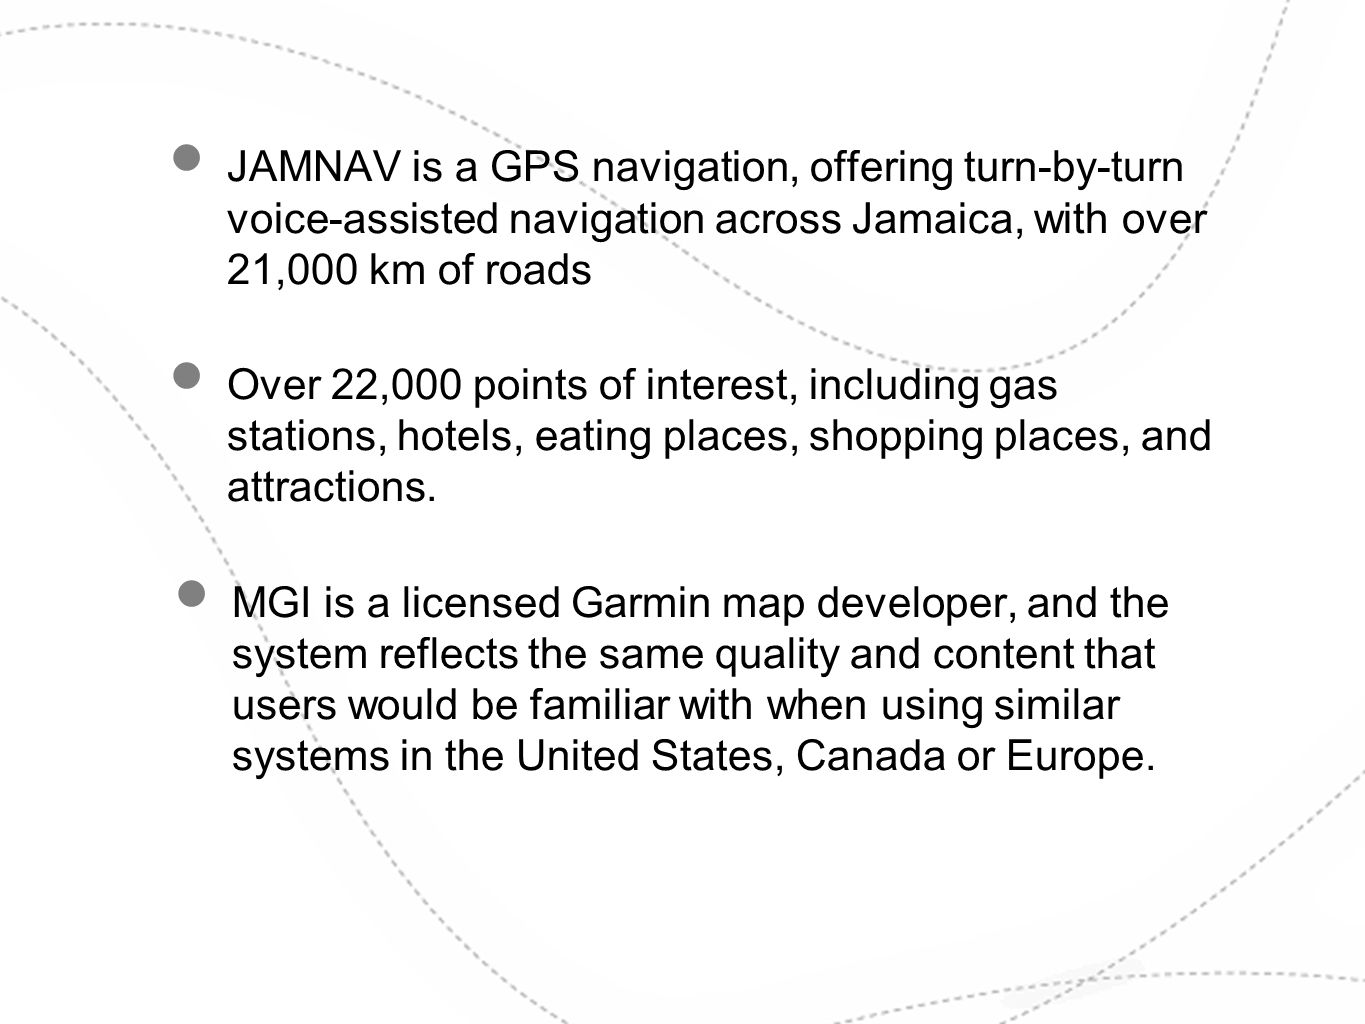 JAMNAV is a GPS navigation, offering turn-by-turn voice-assisted navigation across Jamaica, with over 21,000 km of roads Over 22,000 points of interes